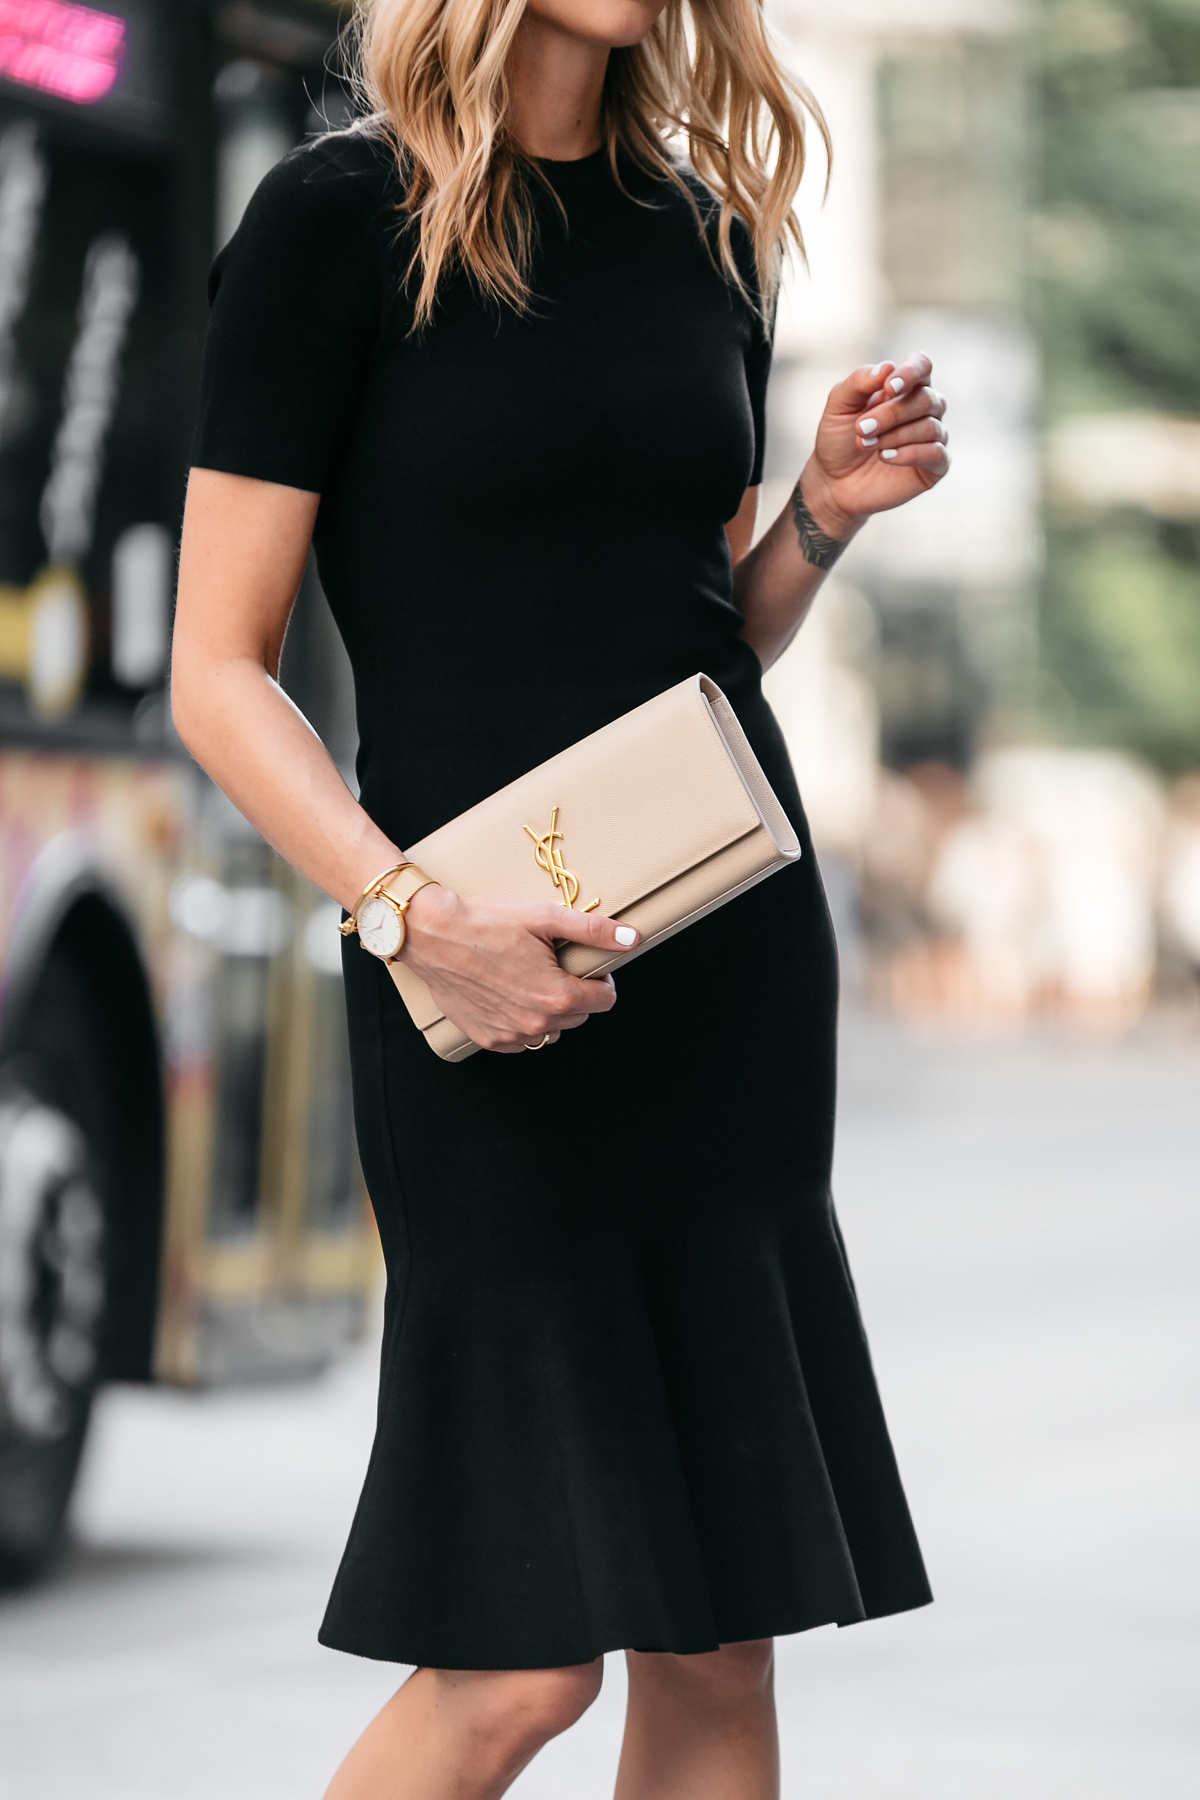 Fashion Jackson, Dallas Blogger, Fashion Blogger, Street Style, Nordstrom Little Black Dress, Milly Black Midi Dress, Milly Mermaid Hem Black Midi Dress, Steve Madden Stecy Nude Ankle Strap Heels, Saint Laurent Monogram Clutch